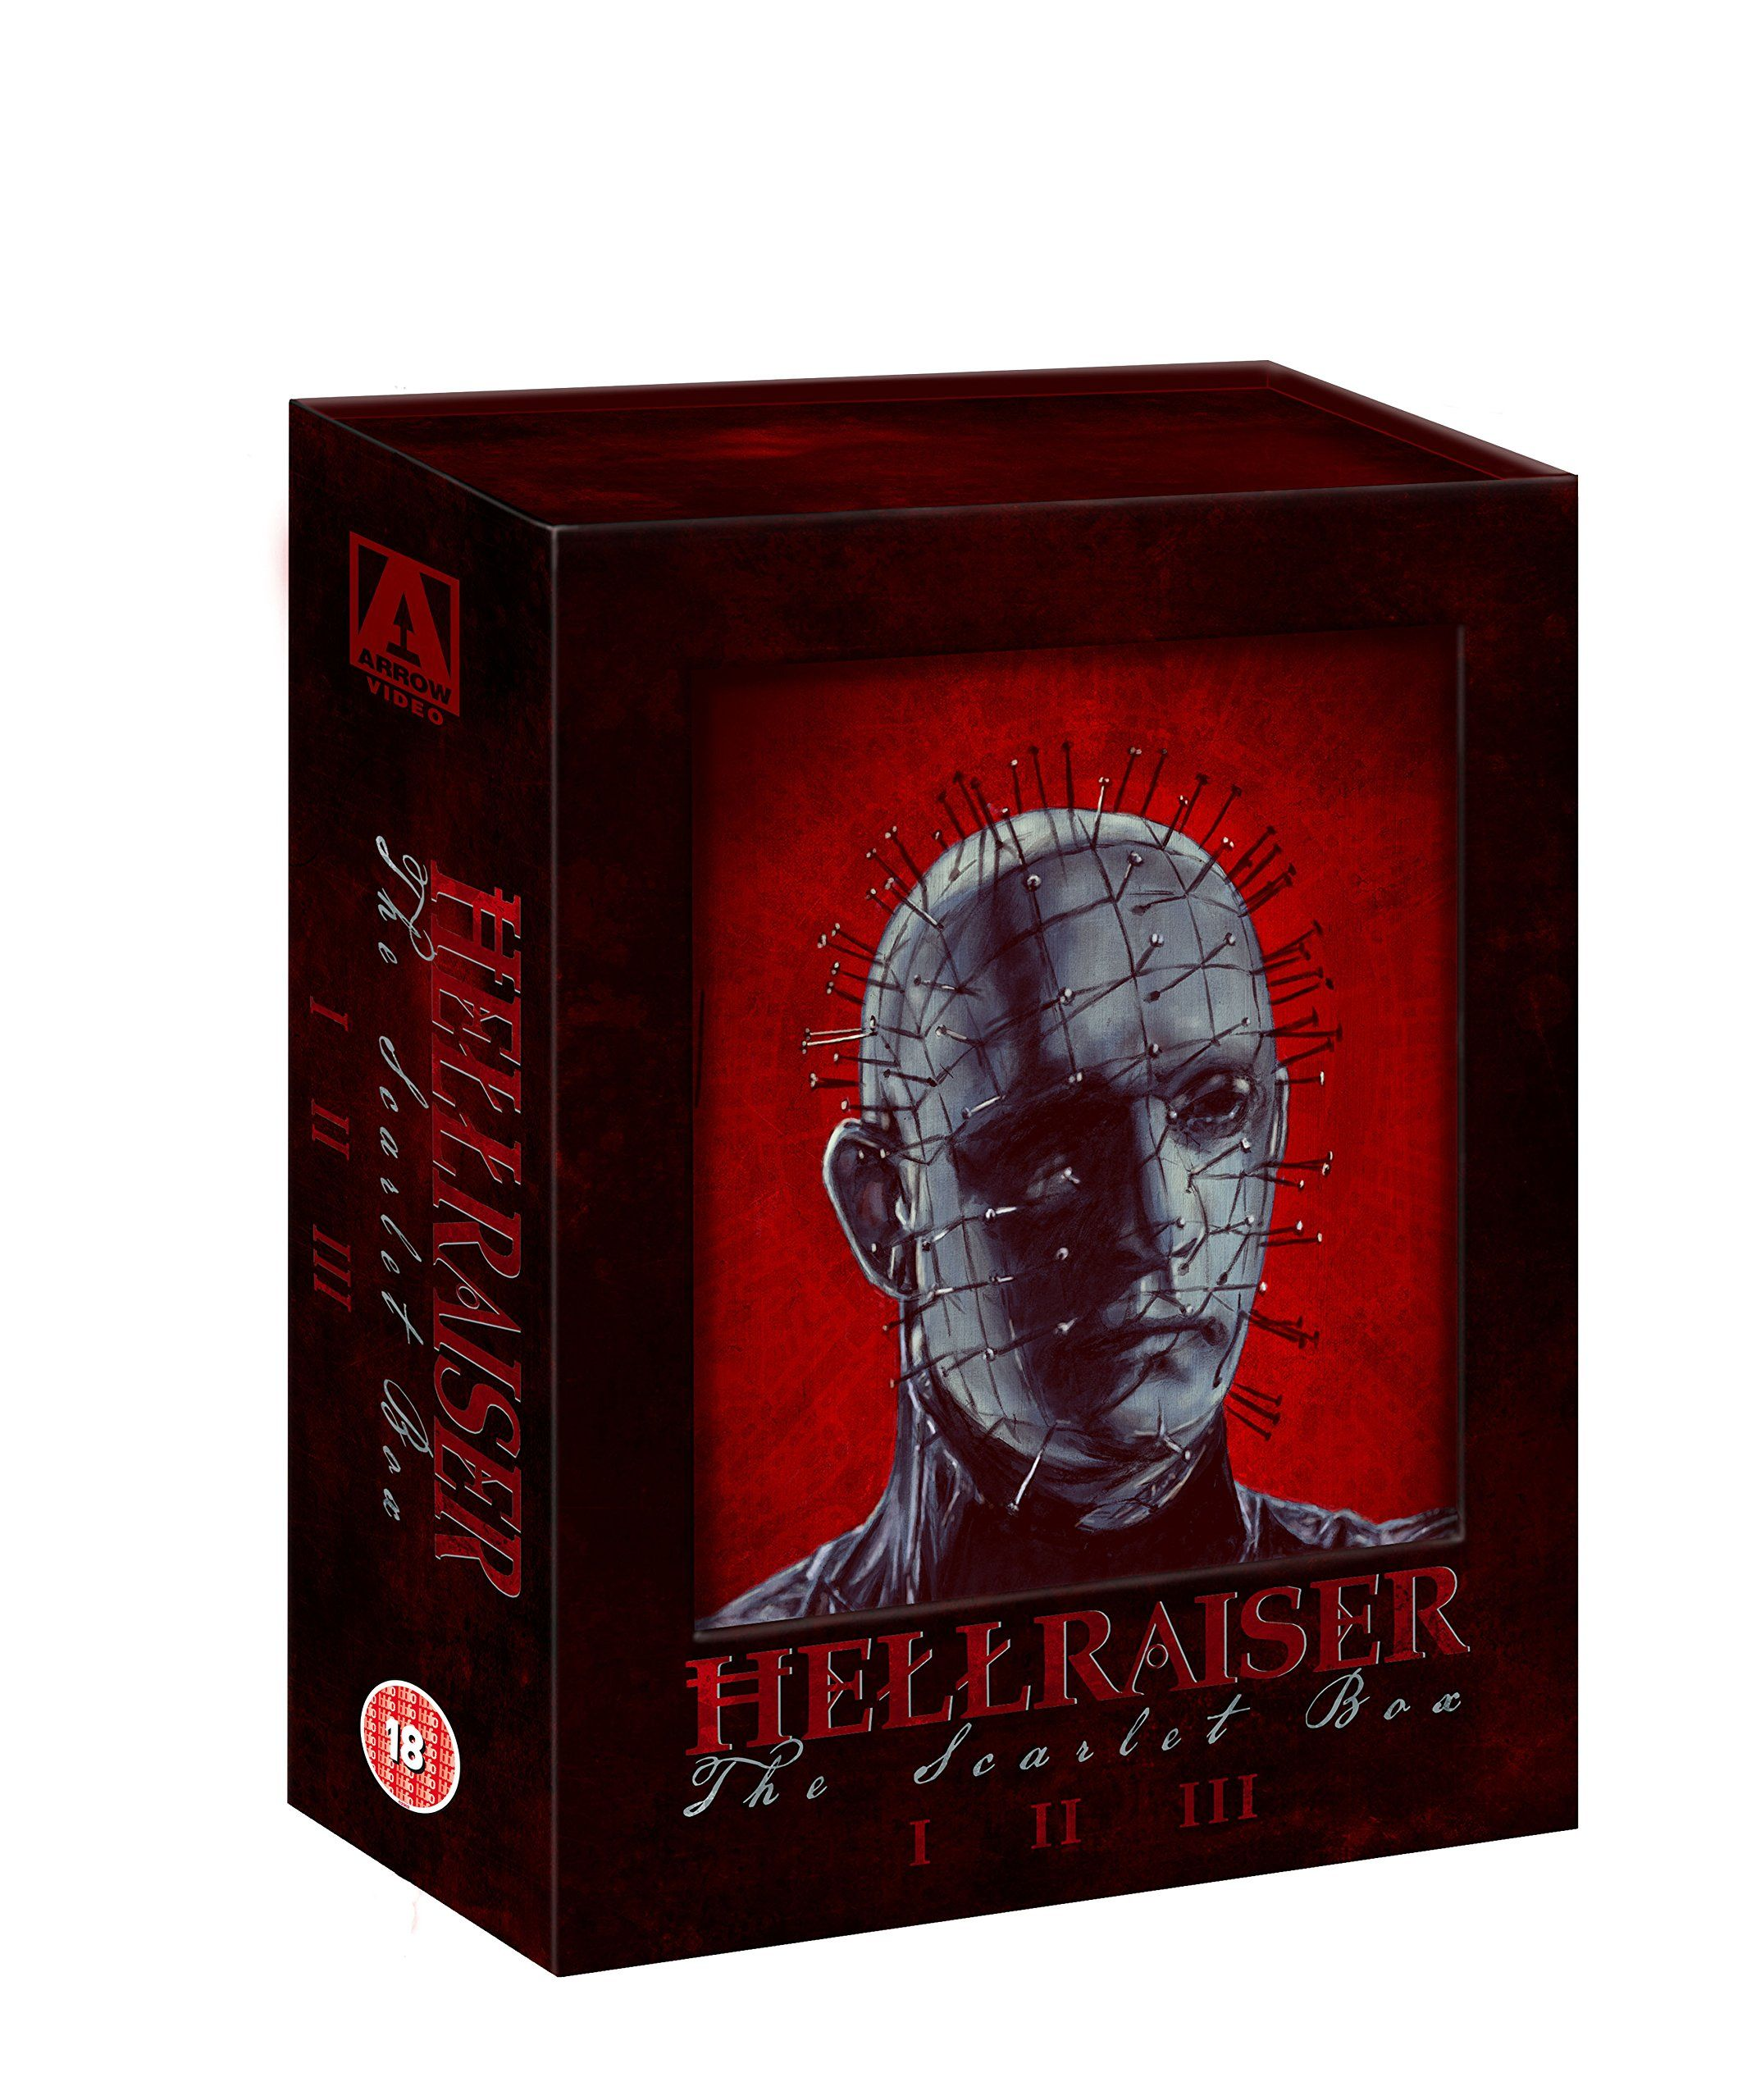 Hellraiser The Scarlet Box Limited Edition Trilogy [Blu